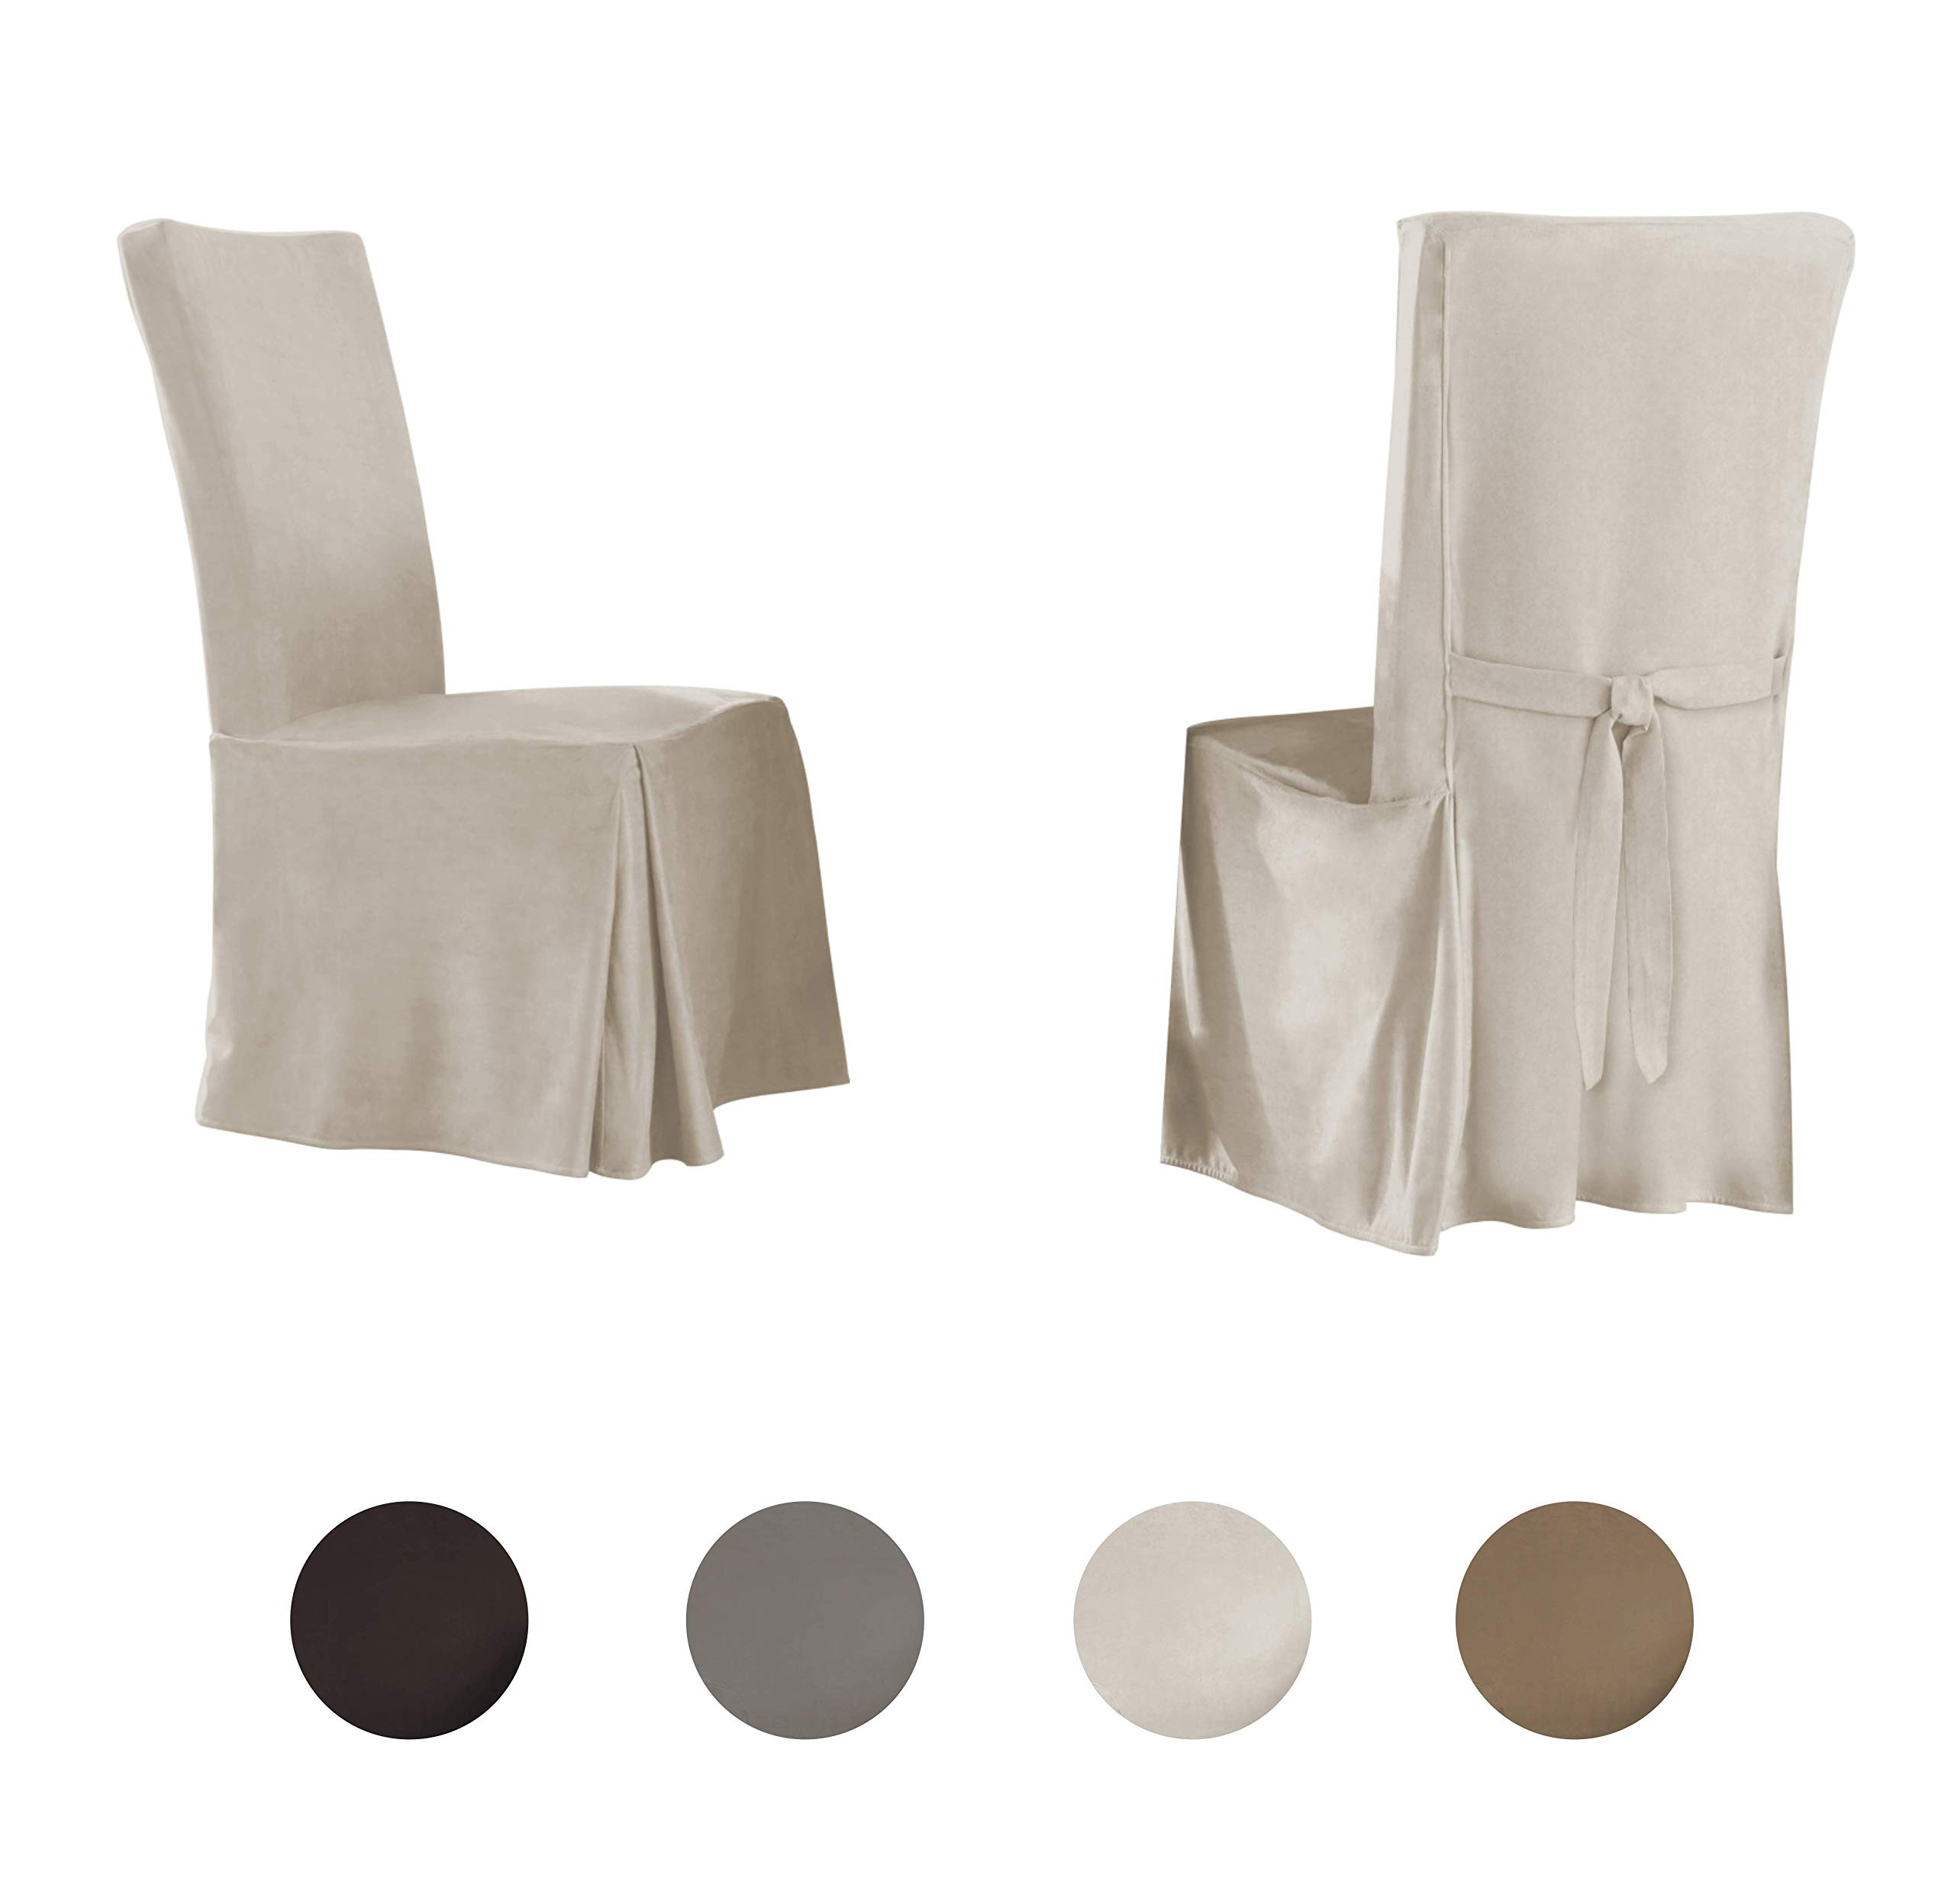 Serta | Relaxed Fit Smooth Suede Furniture Slipcover for Dining Room Chair, Long Skirt (Ivory)